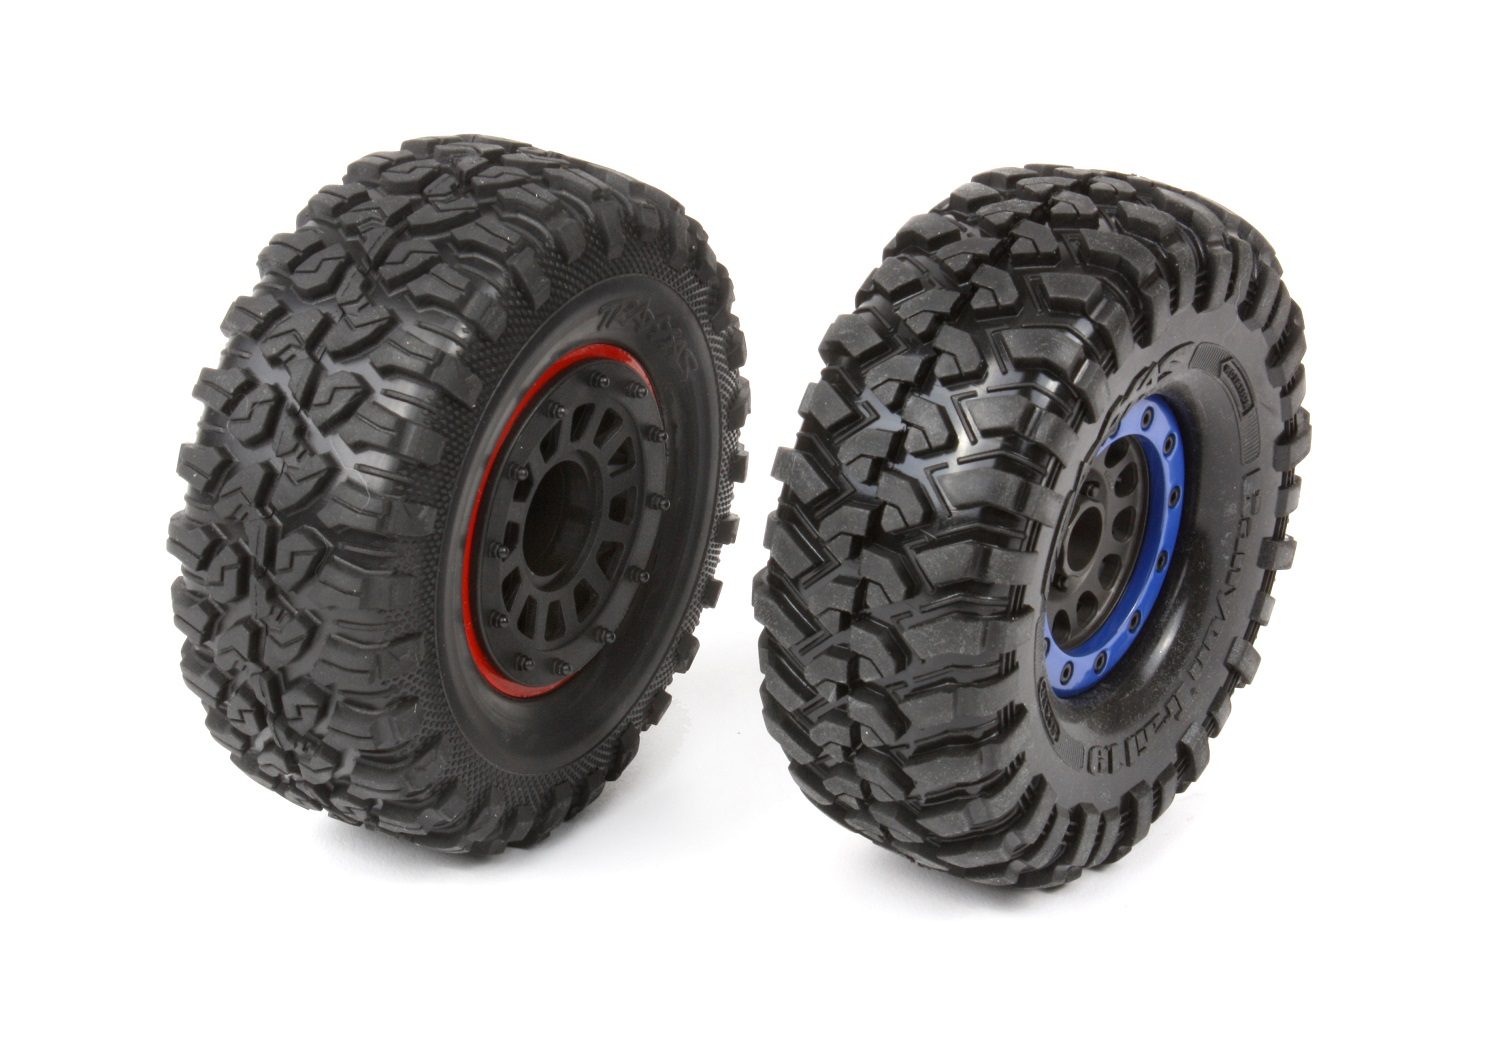 Stock tire (left) Canyon Trail (right)